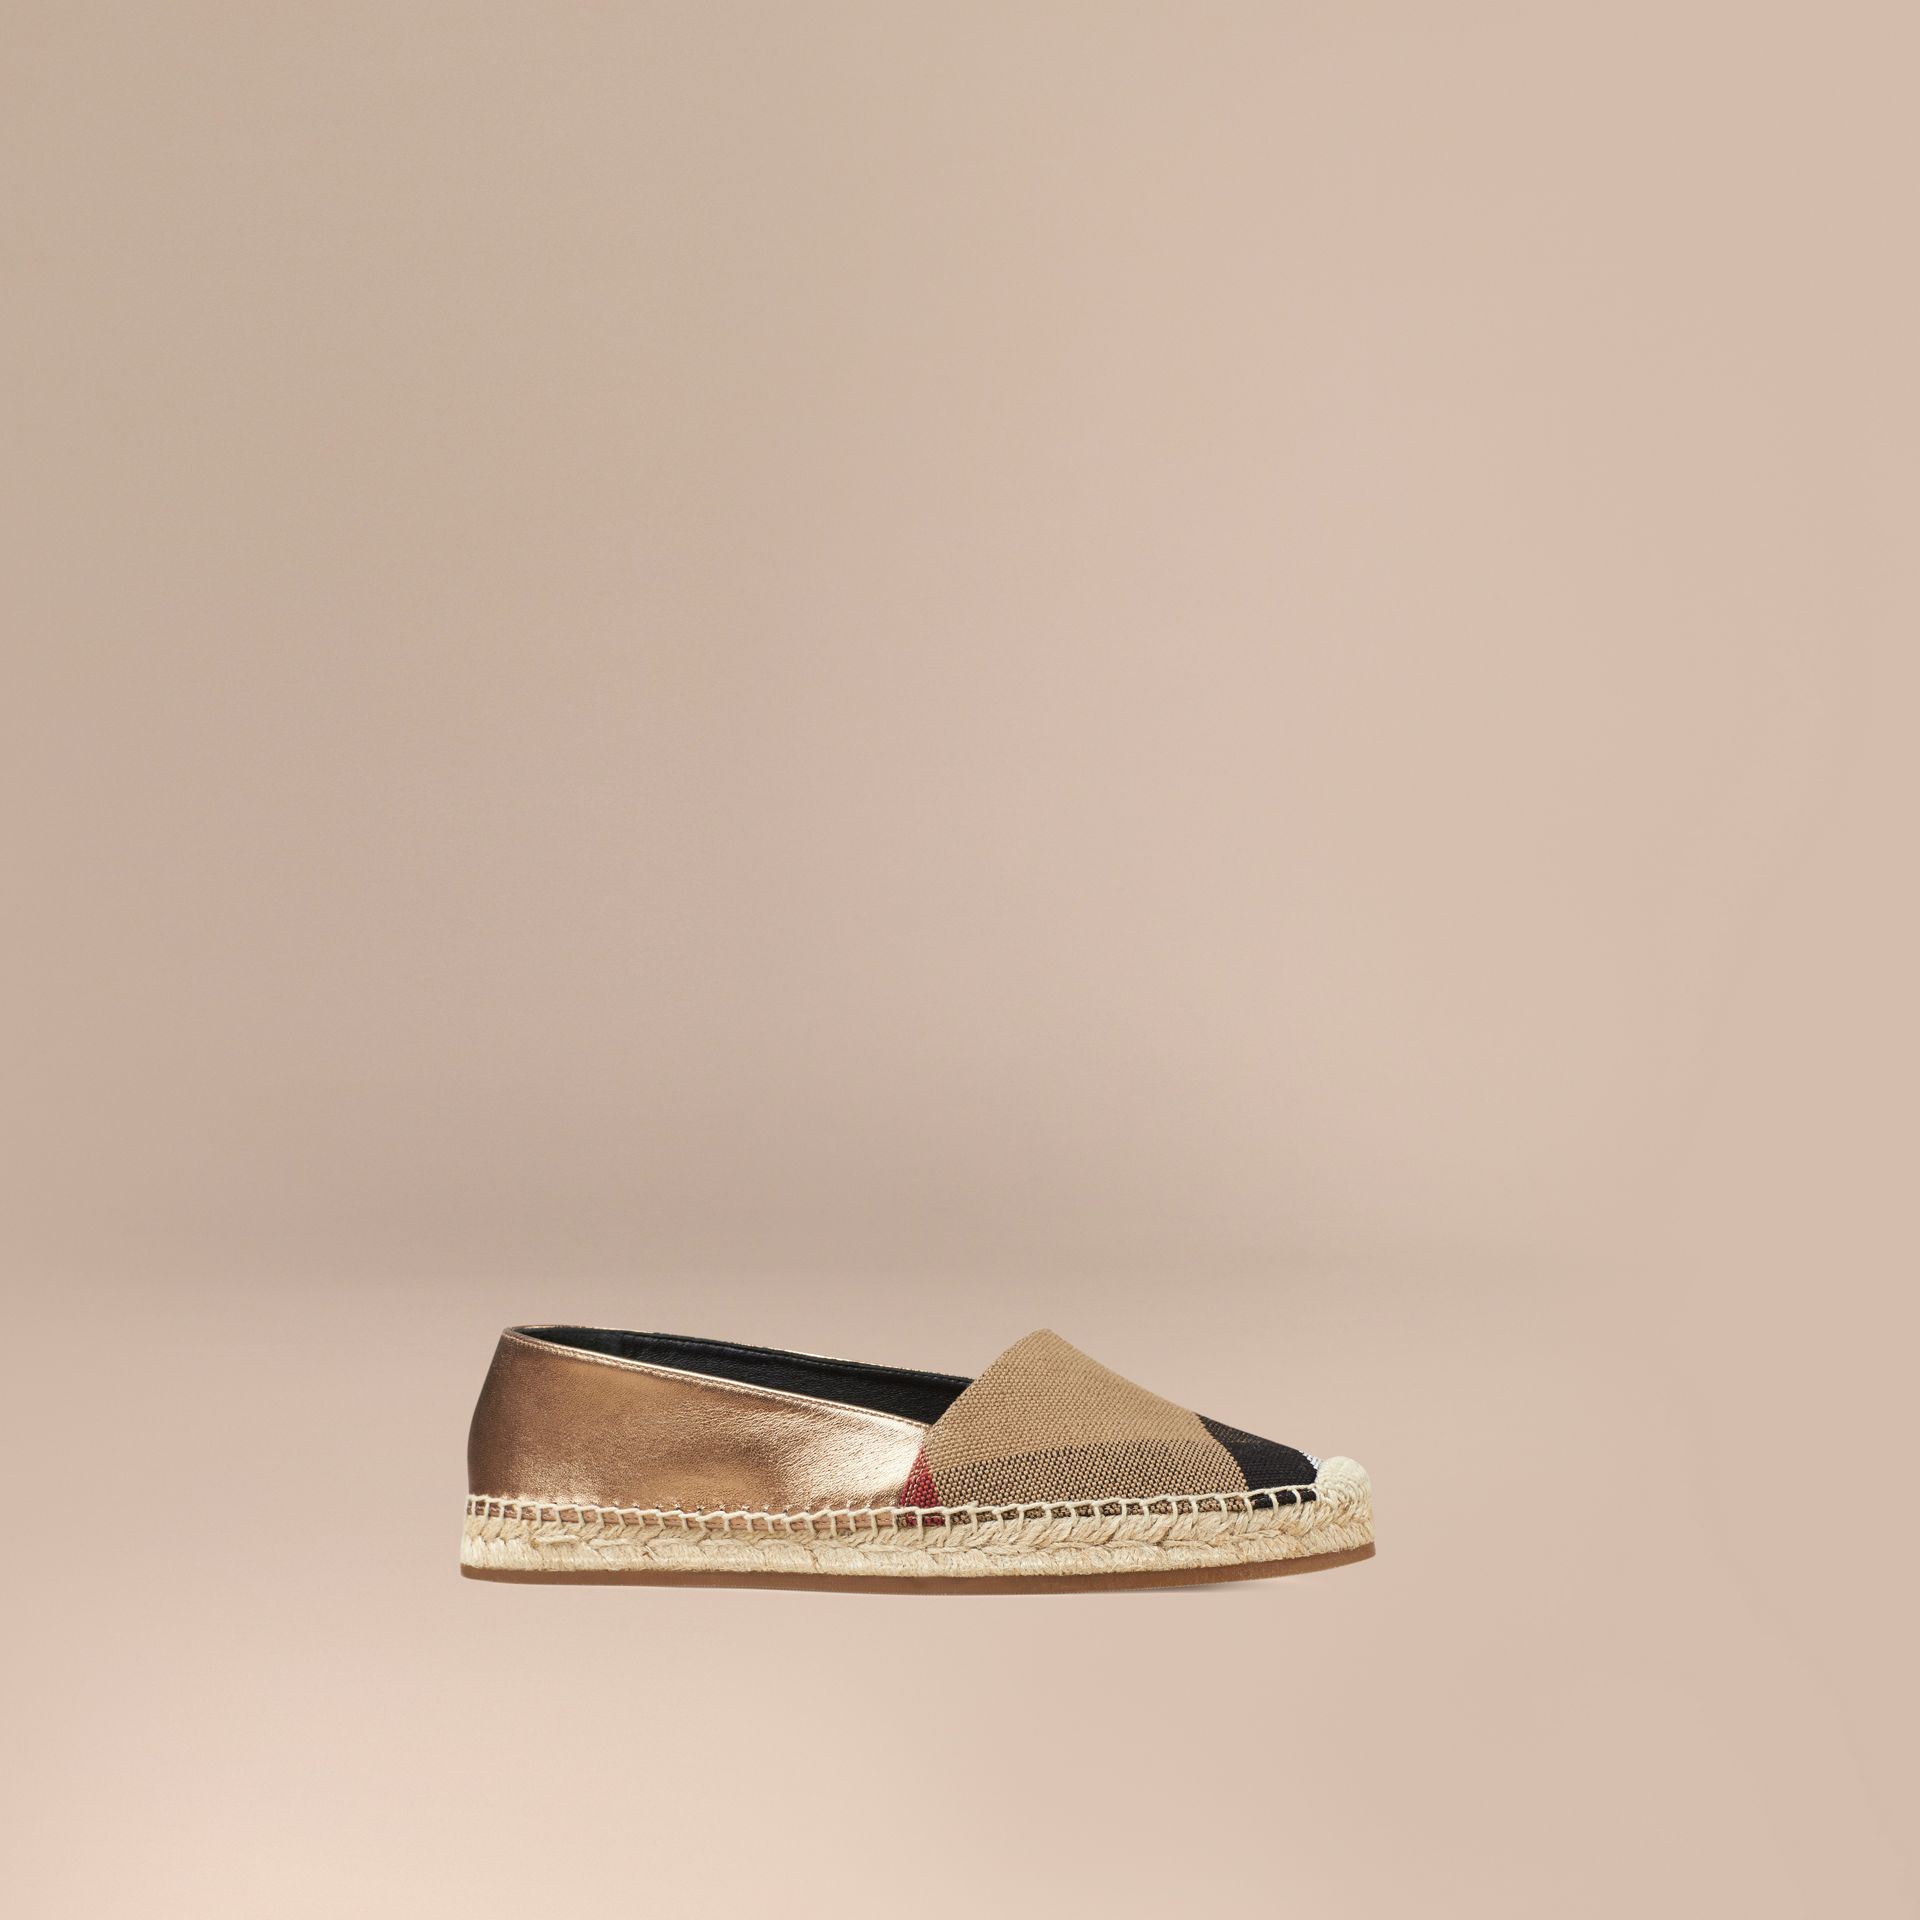 Heritage gold Check Jute Cotton and Leather Espadrilles - gallery image 1